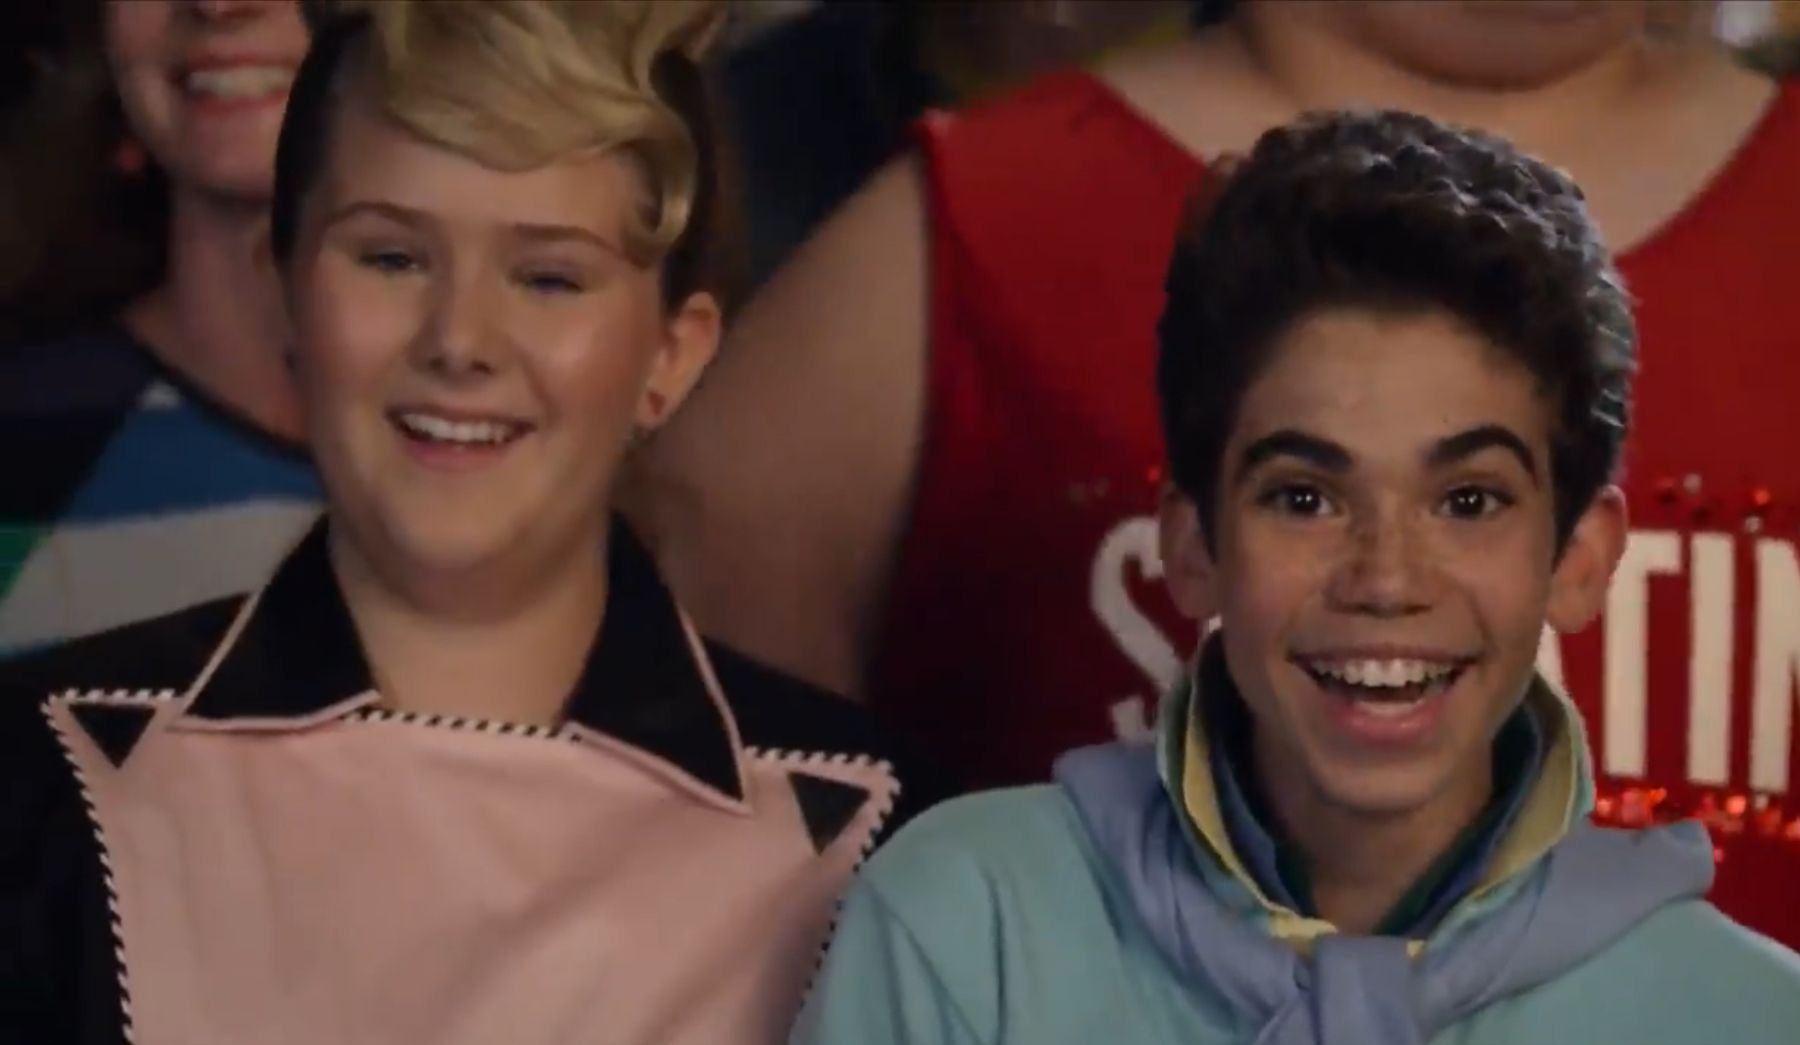 from Grown Ups 2 Cameron boyce, Cameron, Now and forever